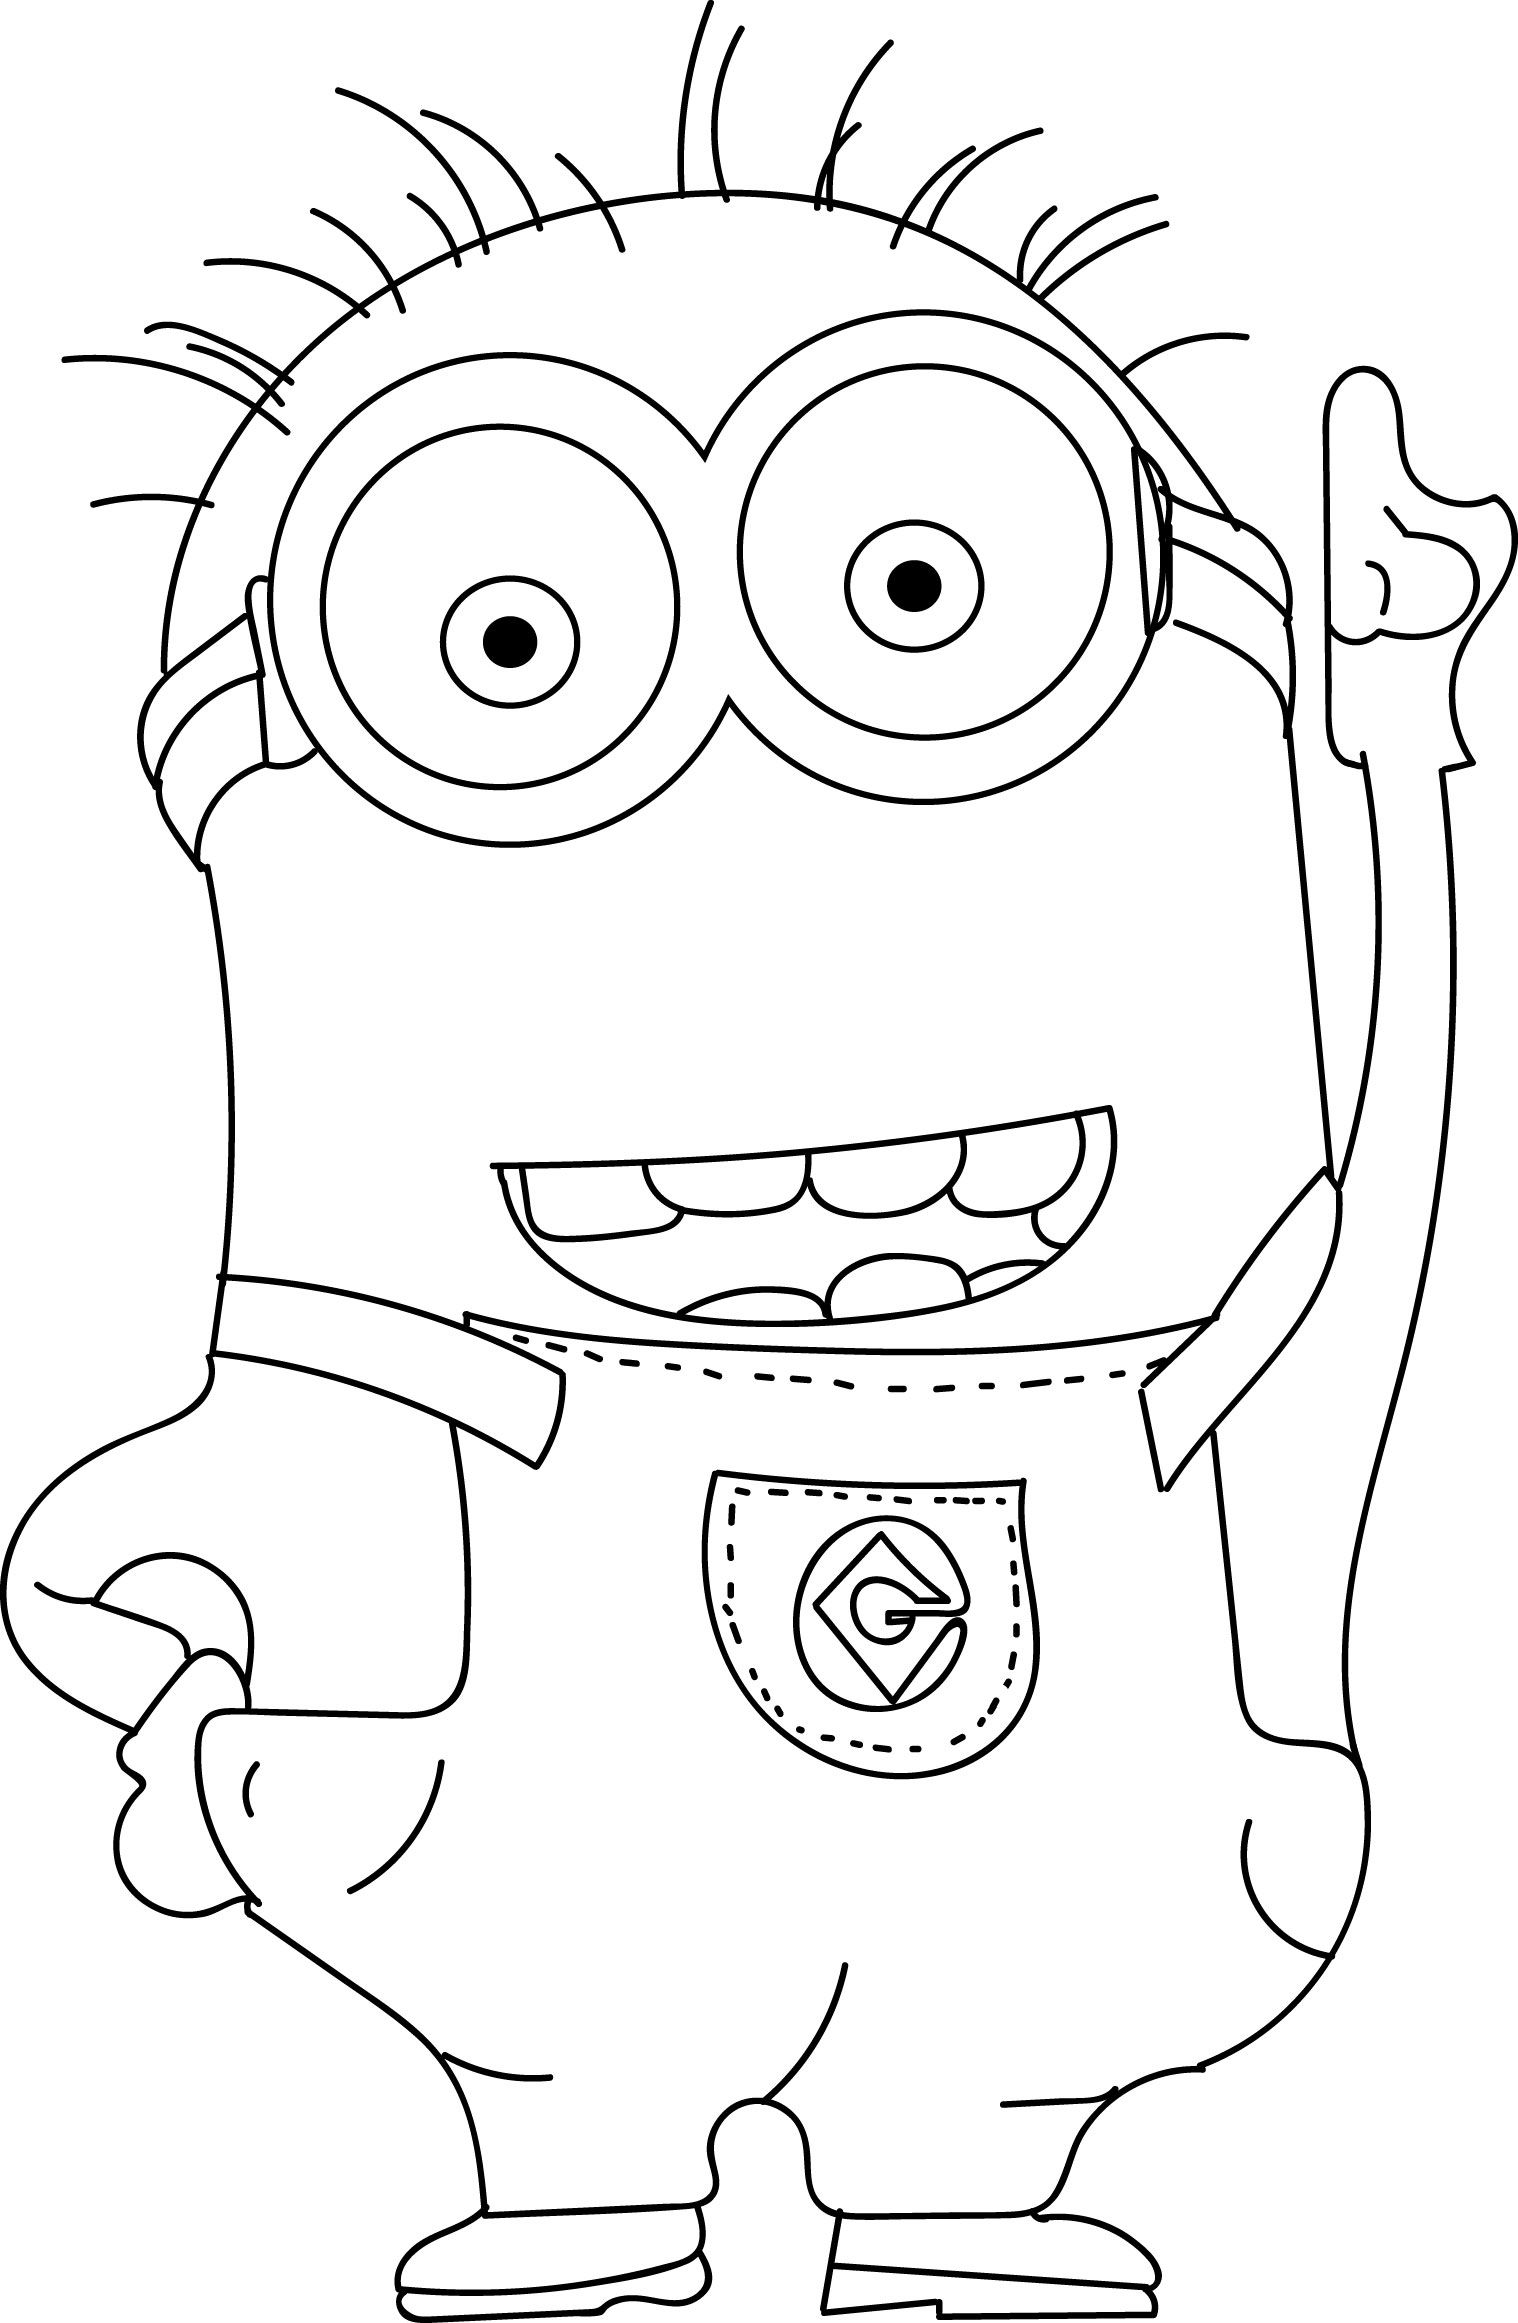 minion printable coloring pages minions coloring pages ausmalbilder wenn du mal buch printable minion pages coloring